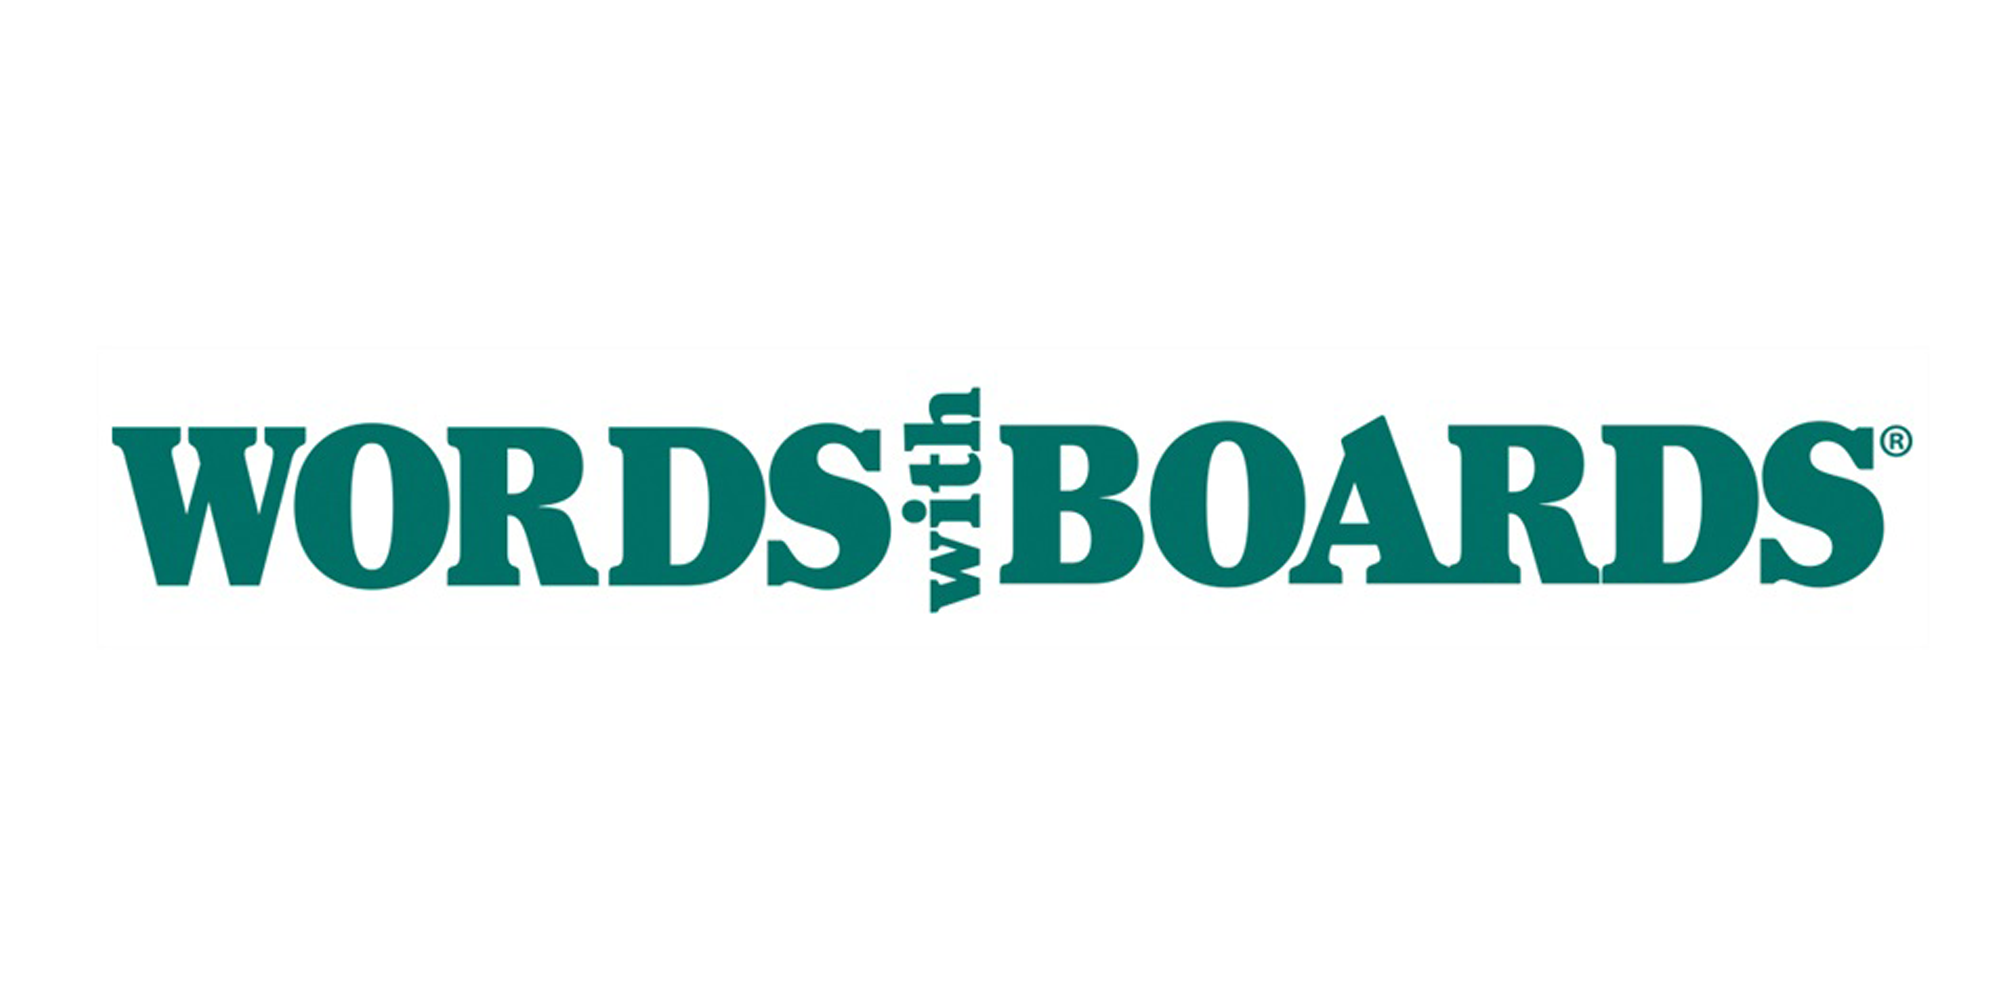 Words With Boards logo